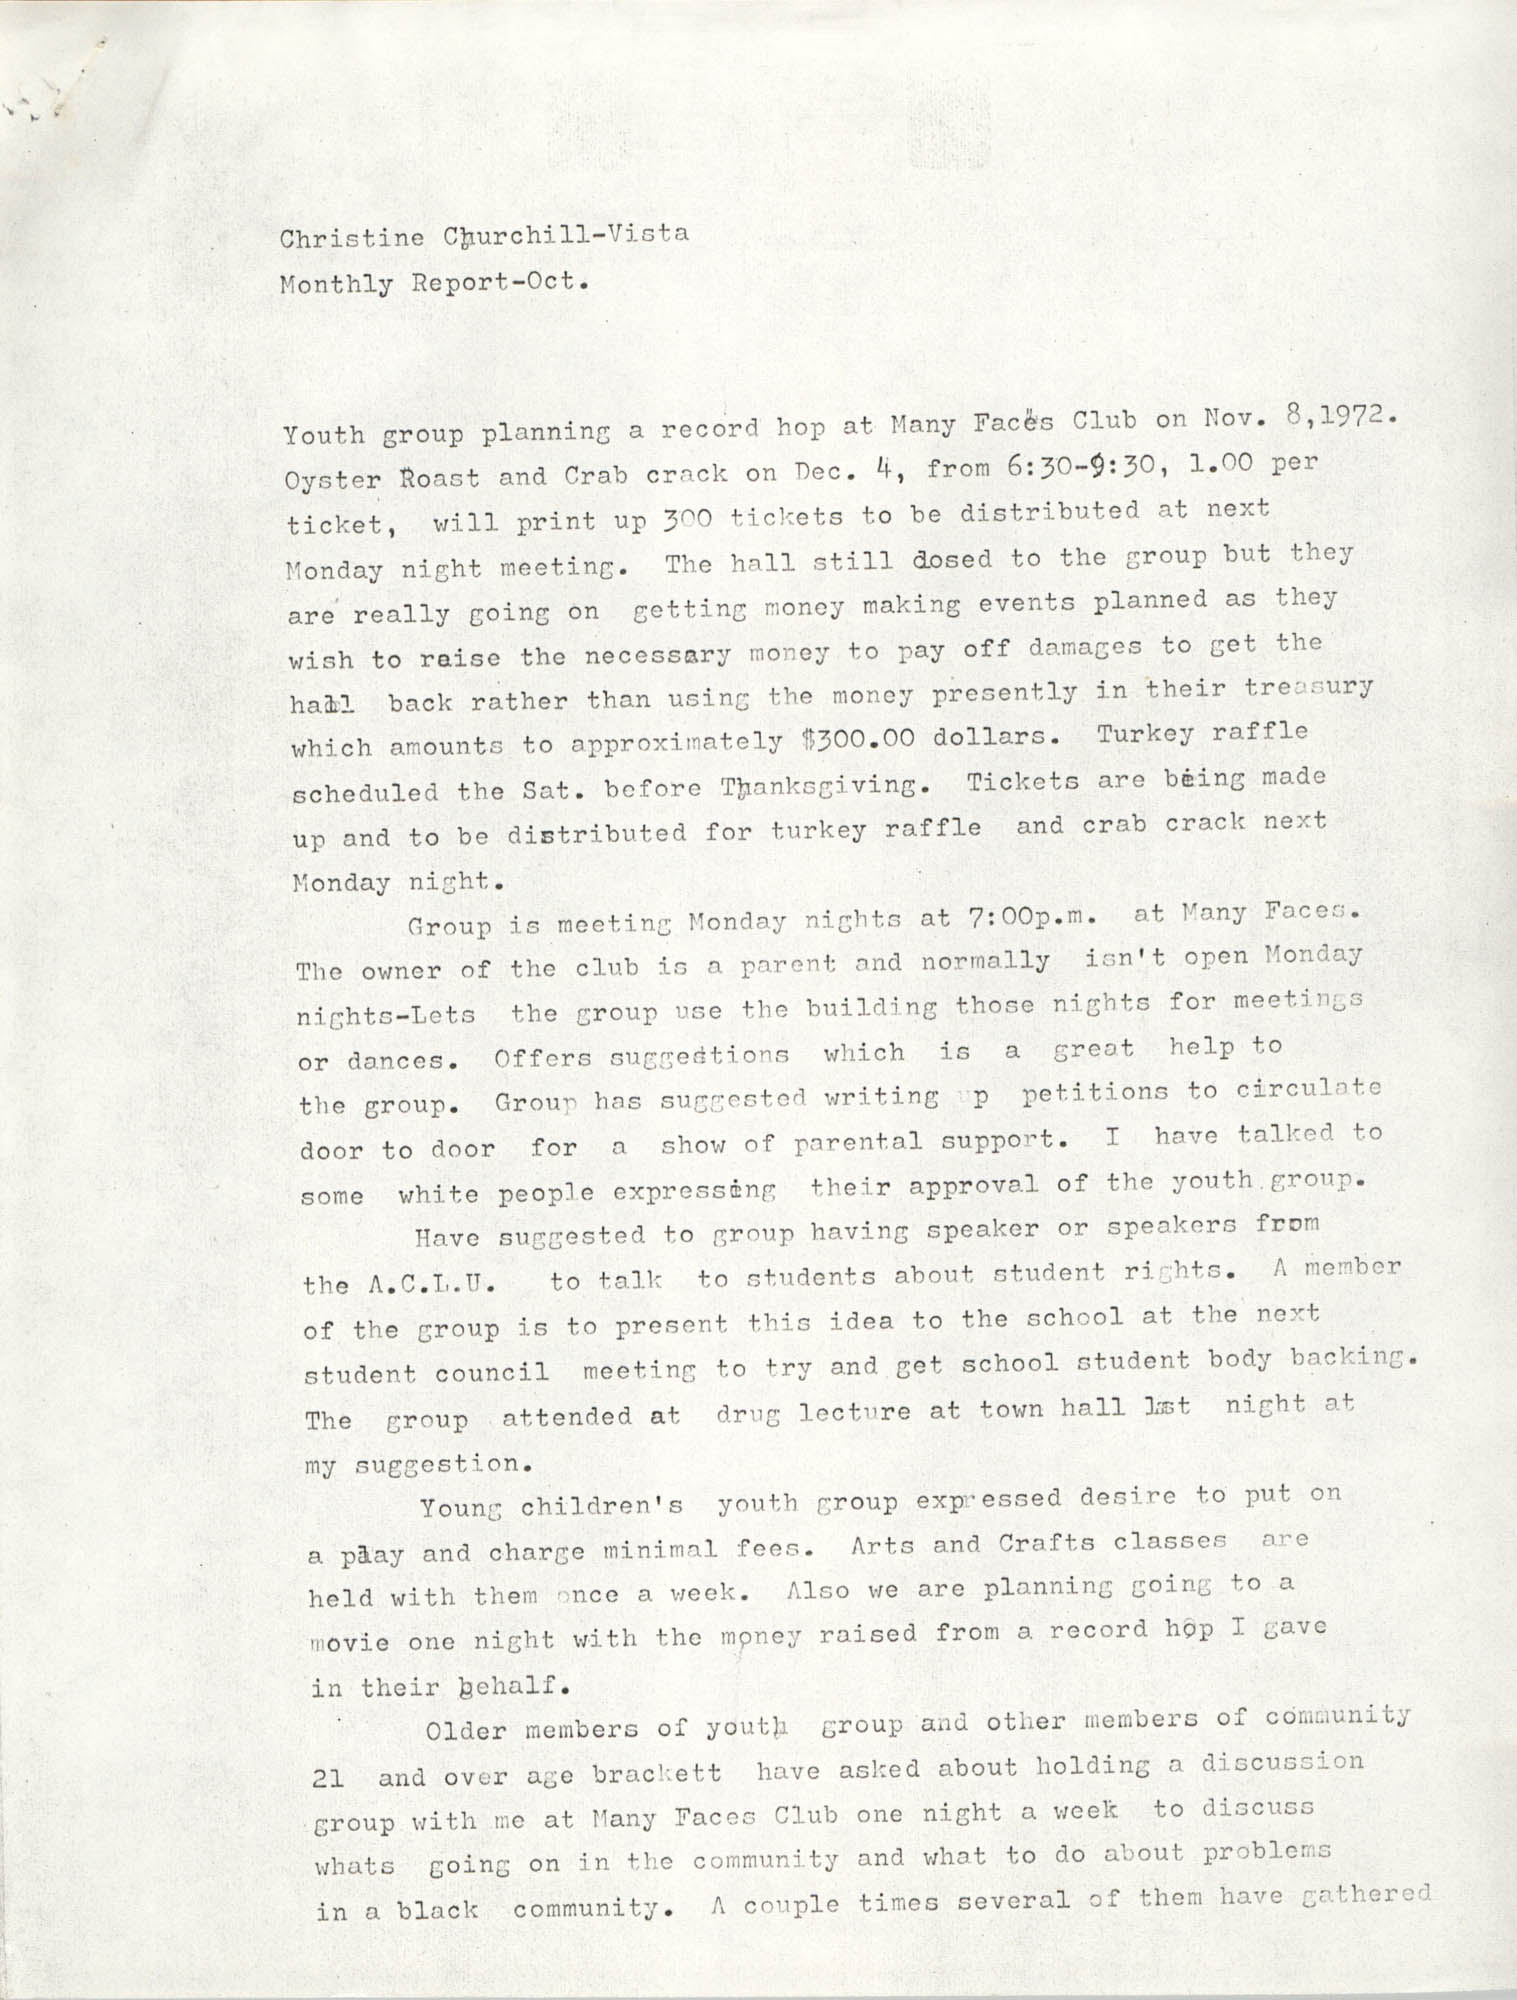 VISTA Monthly Report, October 1972